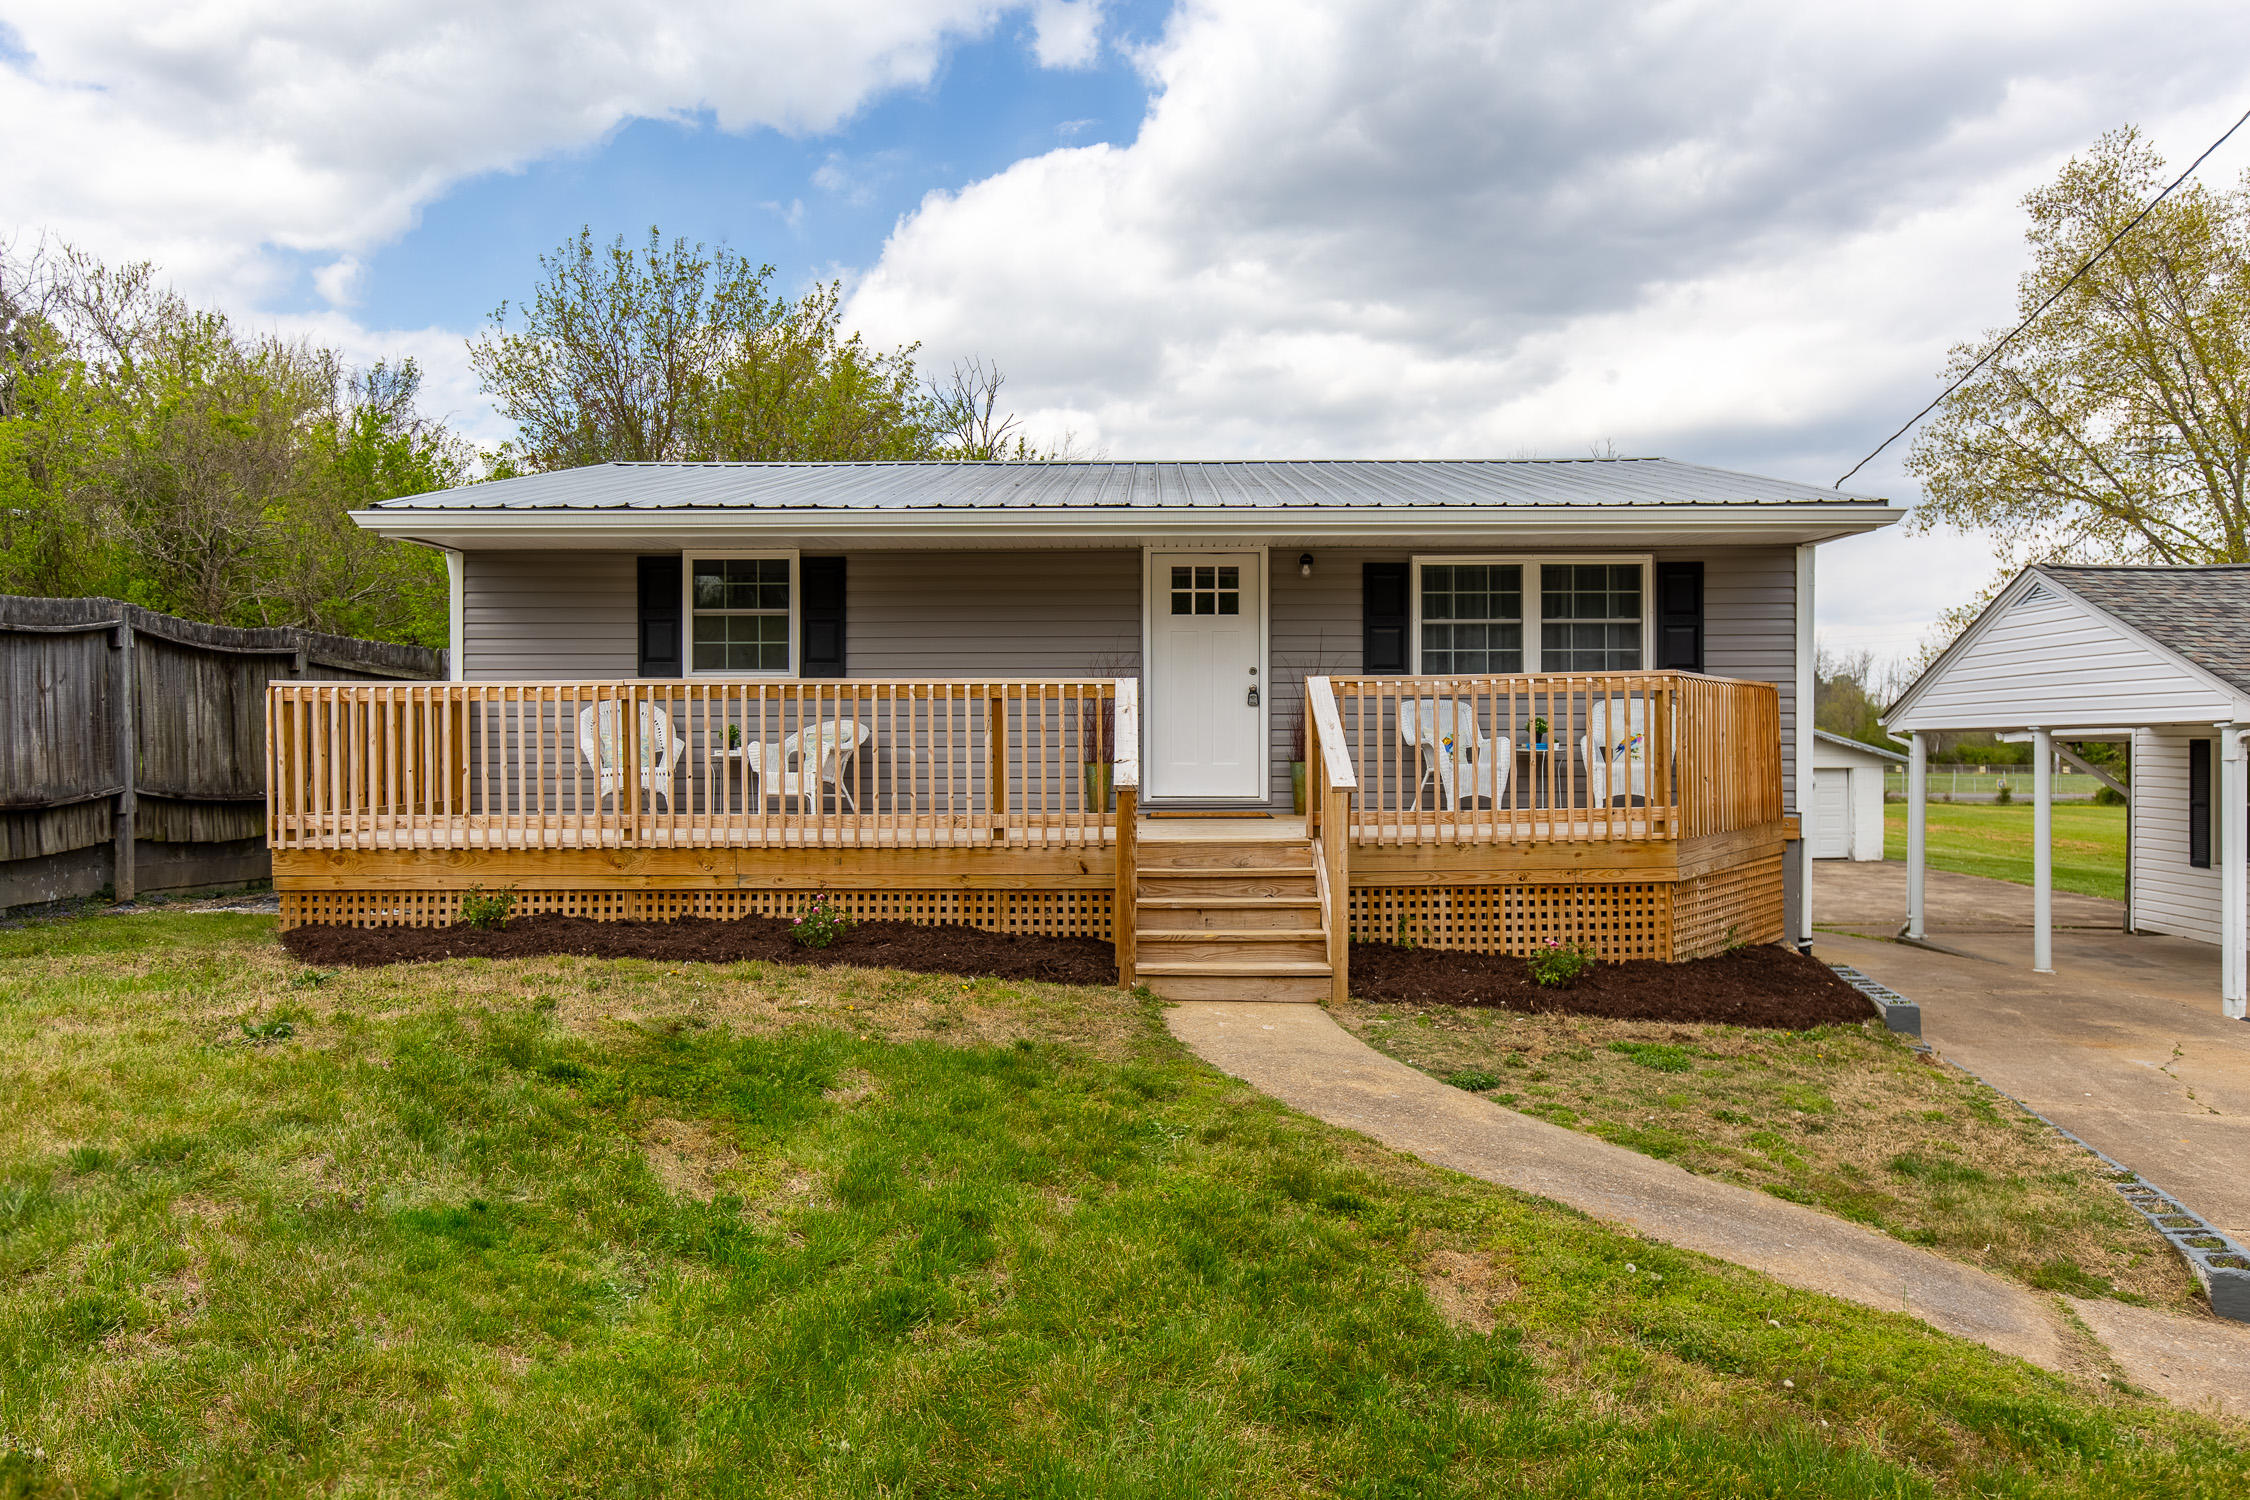 109 Rock Springs Drive, Kingsport, Tennessee 37660, 2 Bedrooms Bedrooms, ,1 BathroomBathrooms,Single Family,For Sale,109 Rock Springs Drive,9921360